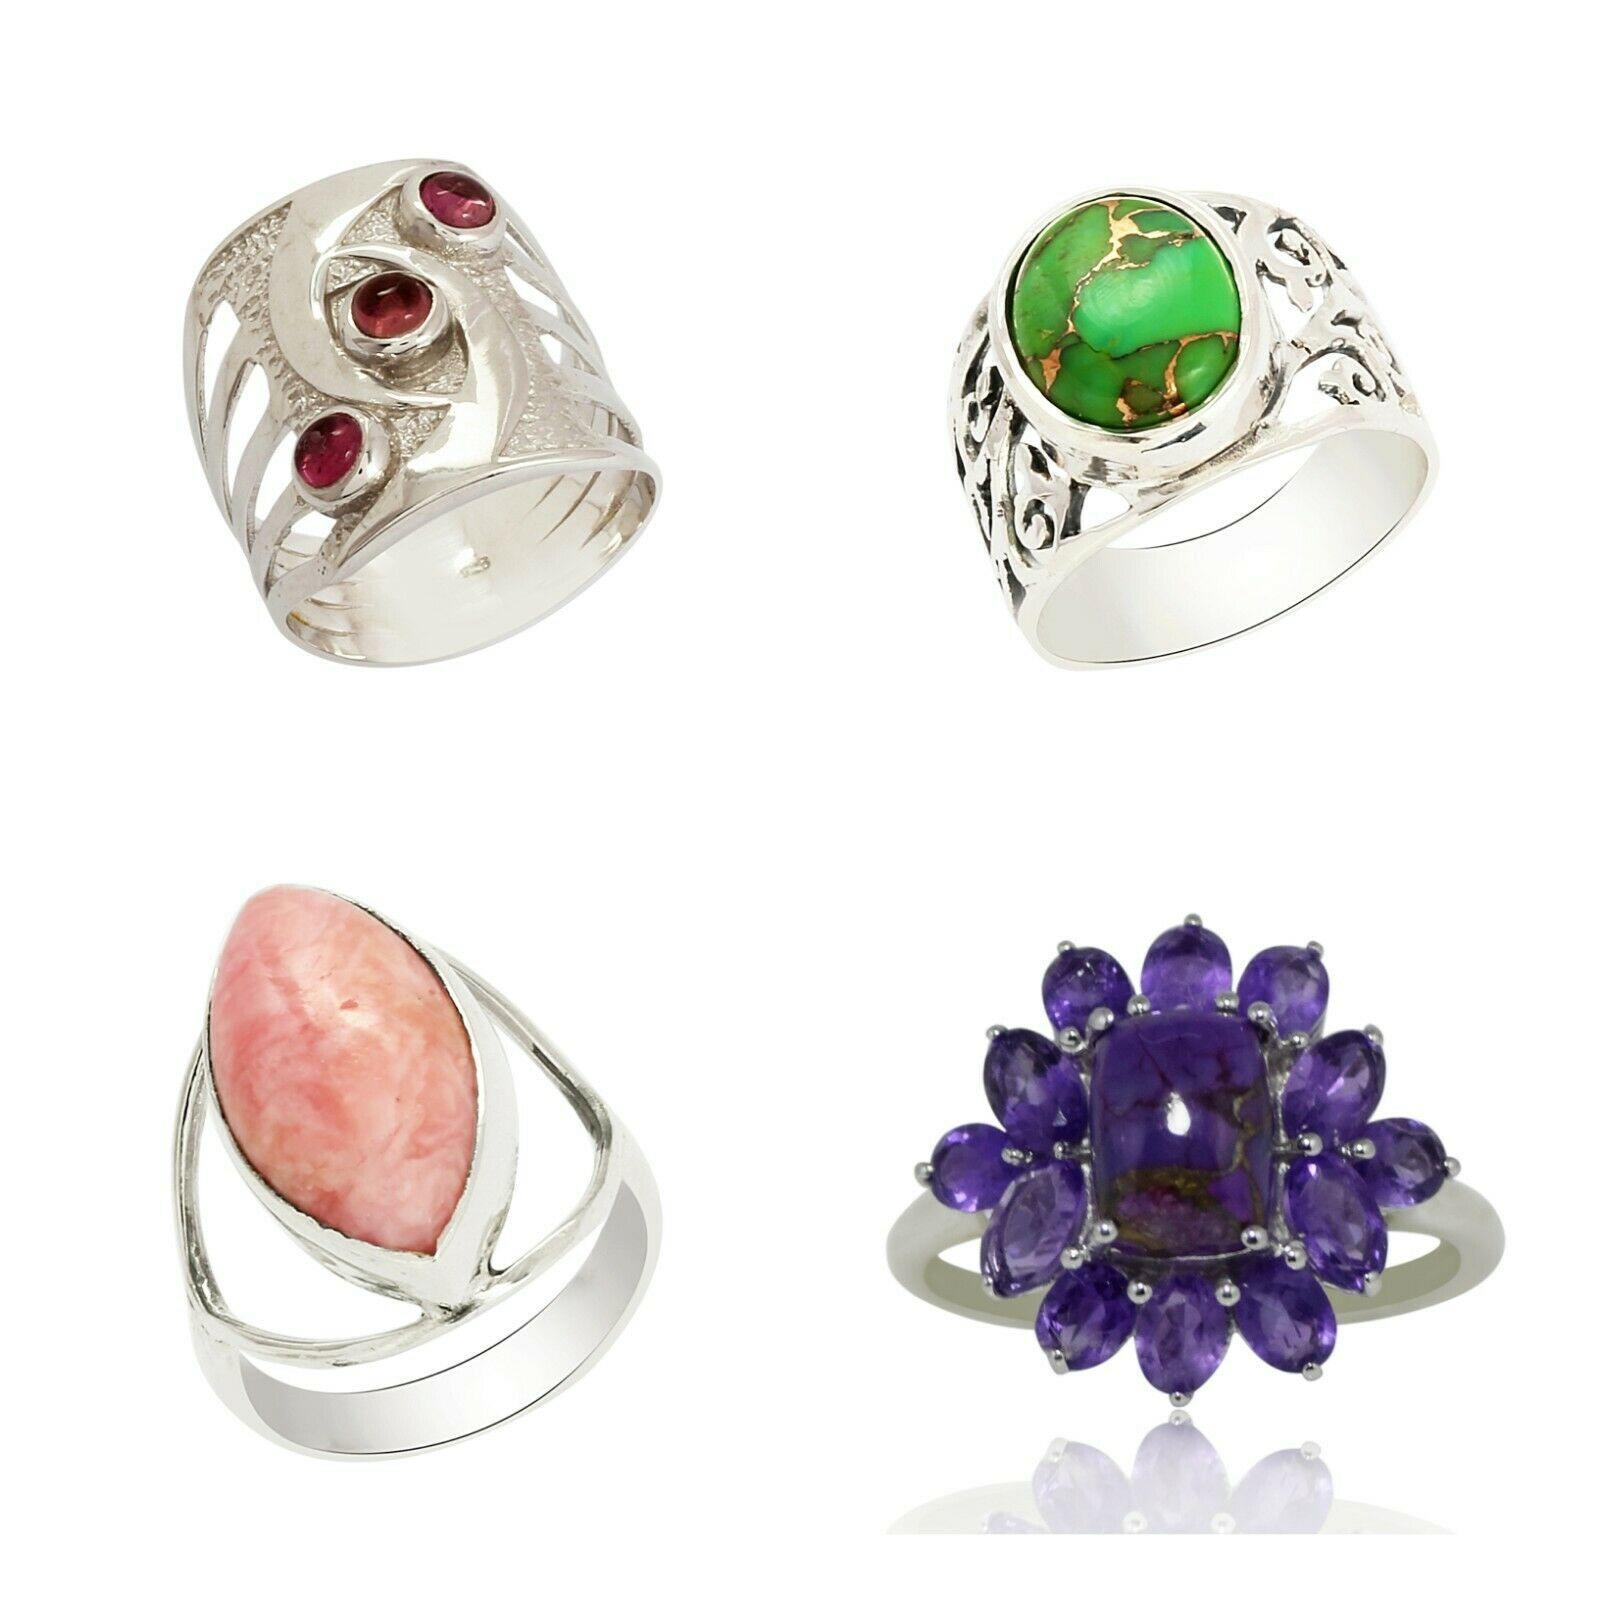 Shine Jewel Natural Gemstone Handmade Collection 925 Sterling Silver Ring